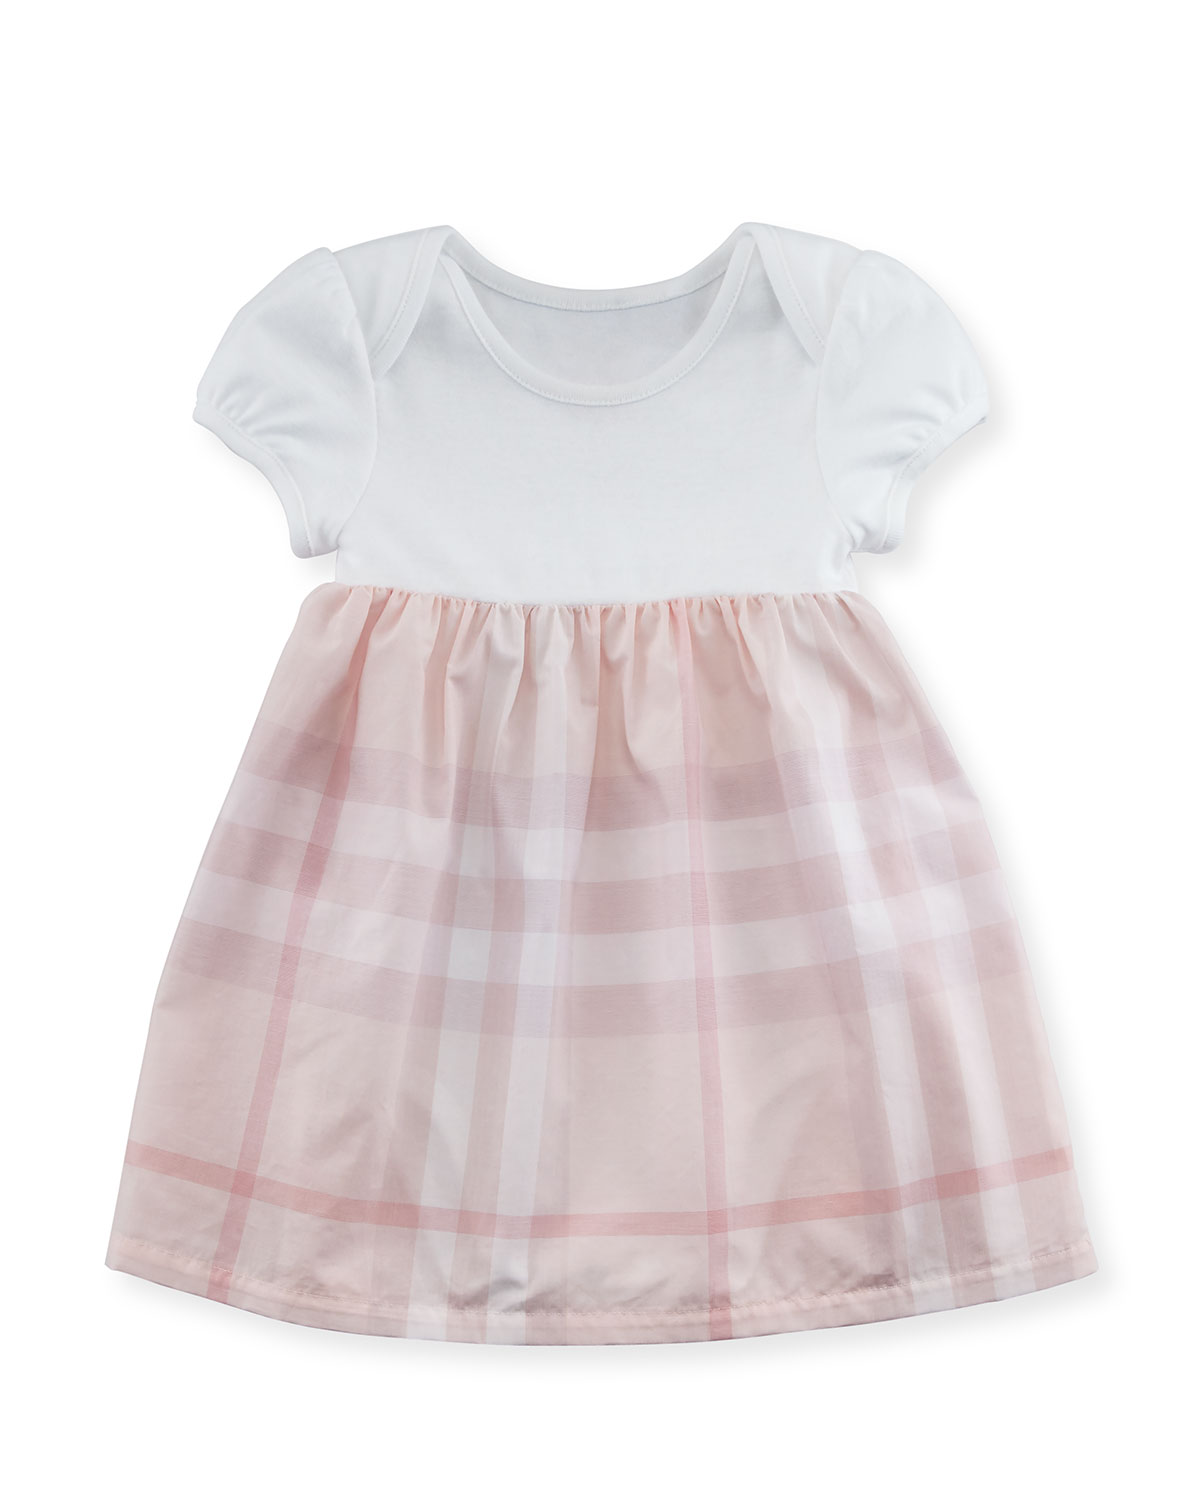 Cherrylina Cap-Sleeve Play Dress, White, Size 3-24 Months